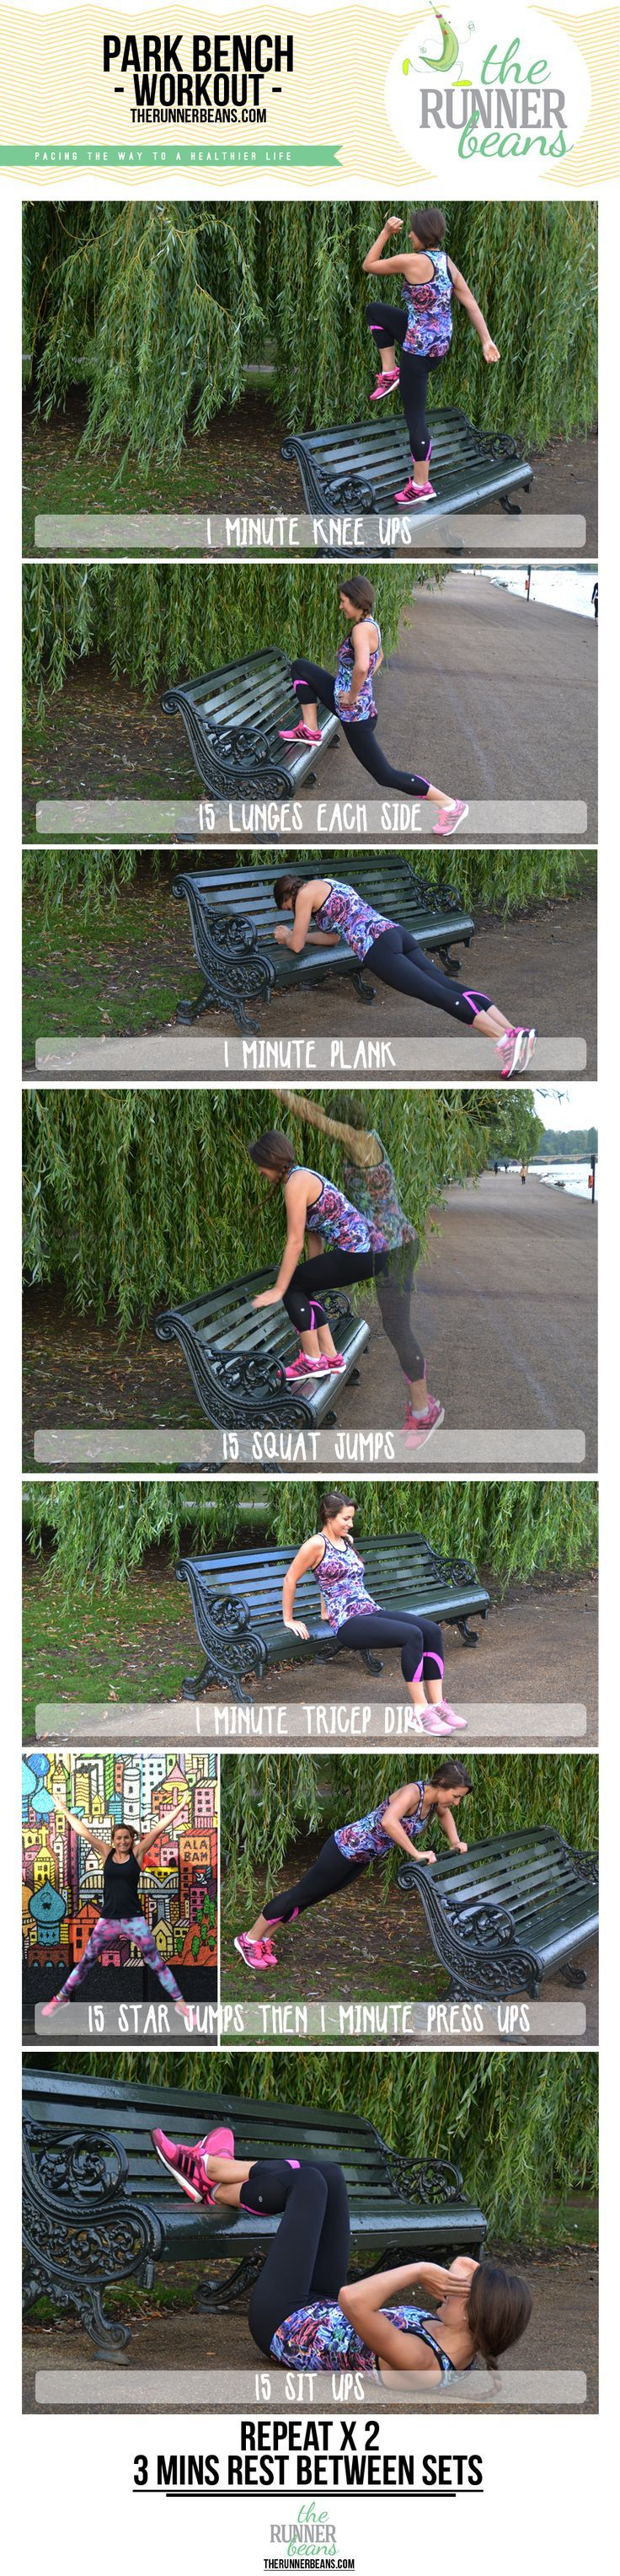 An easy workout utilising a park bench or a bench anywhere! Great to add on after some cardio or in between sets of sprint intervals. No equipment needed and works the whole body. http://www.therunnerbeans.com